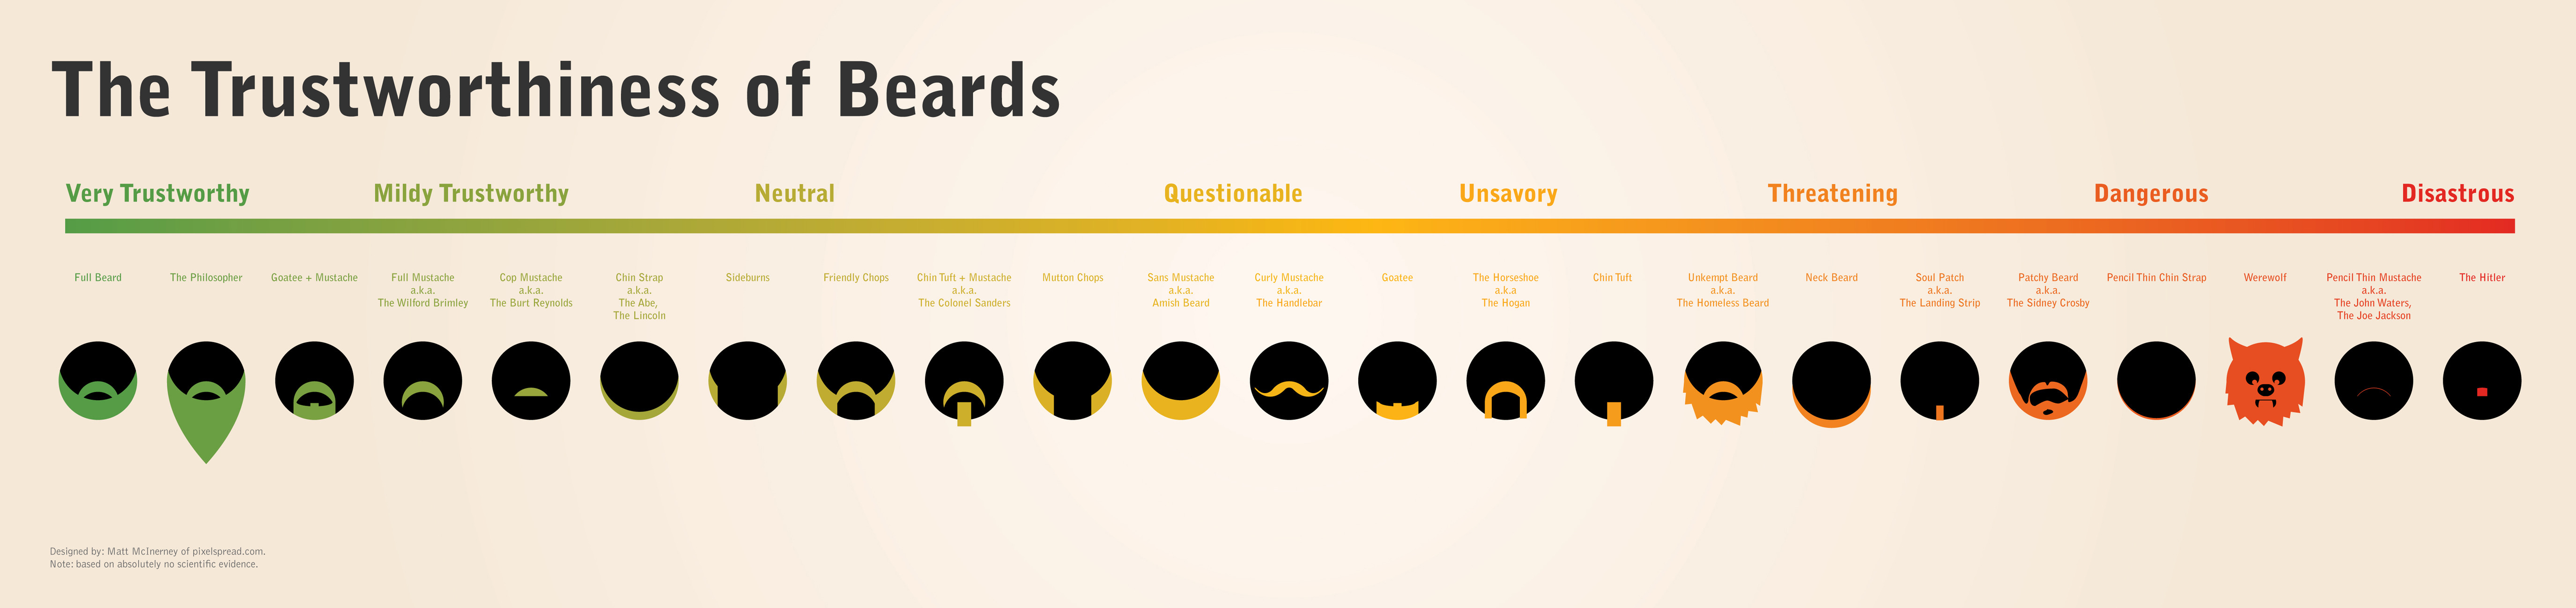 trustworthiness of facial hair.png - MyConfinedSpace